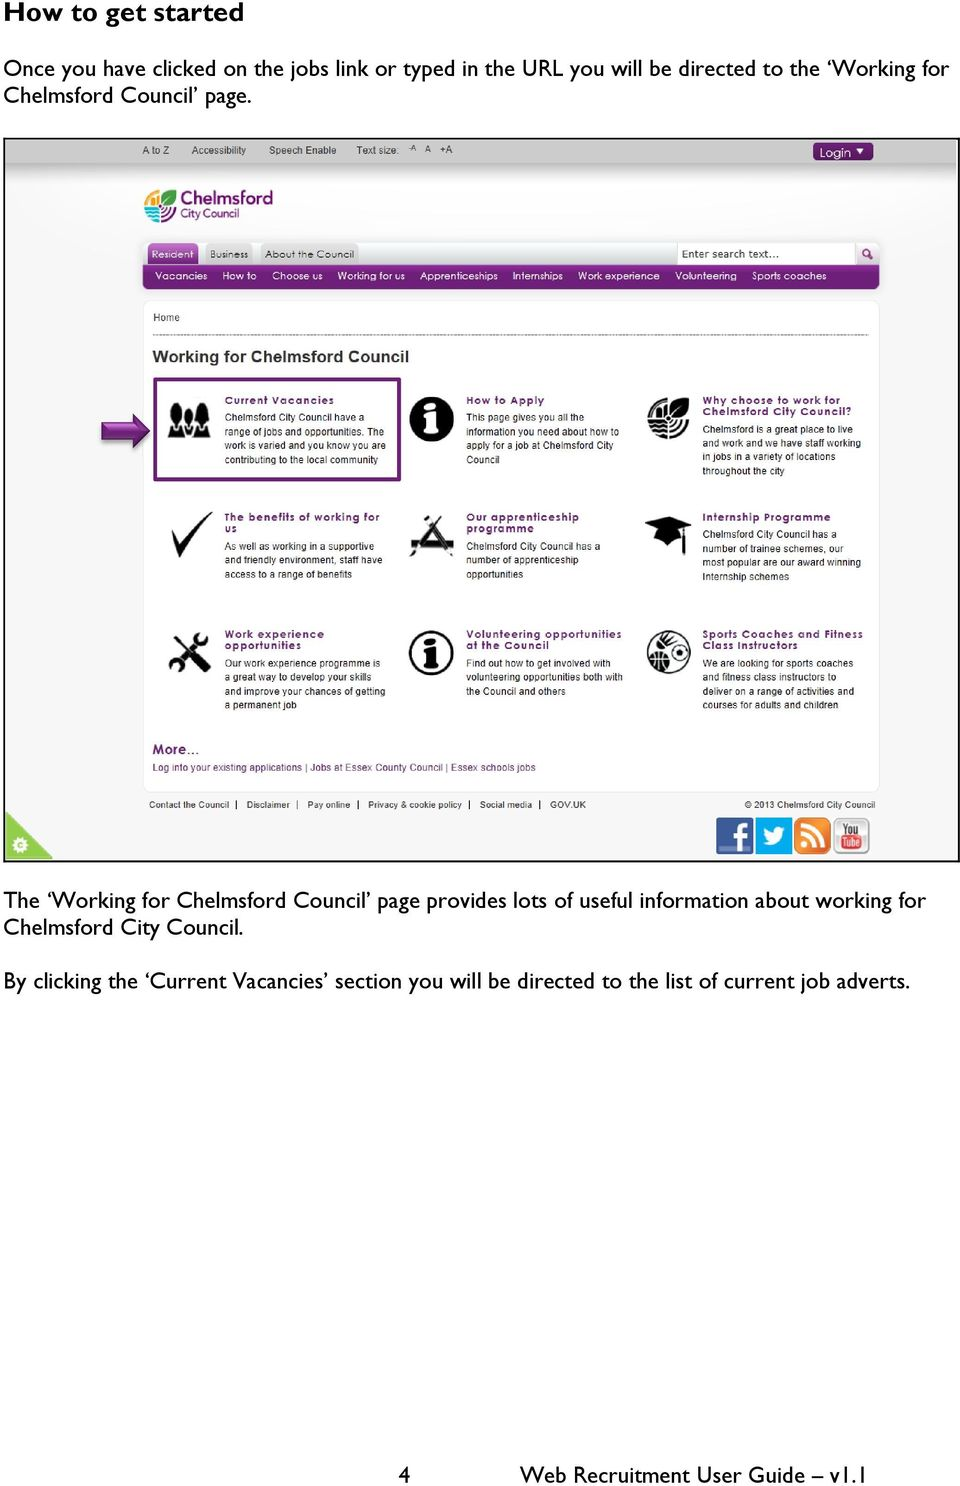 The Working for Chelmsford Council page provides lots of useful information about working for